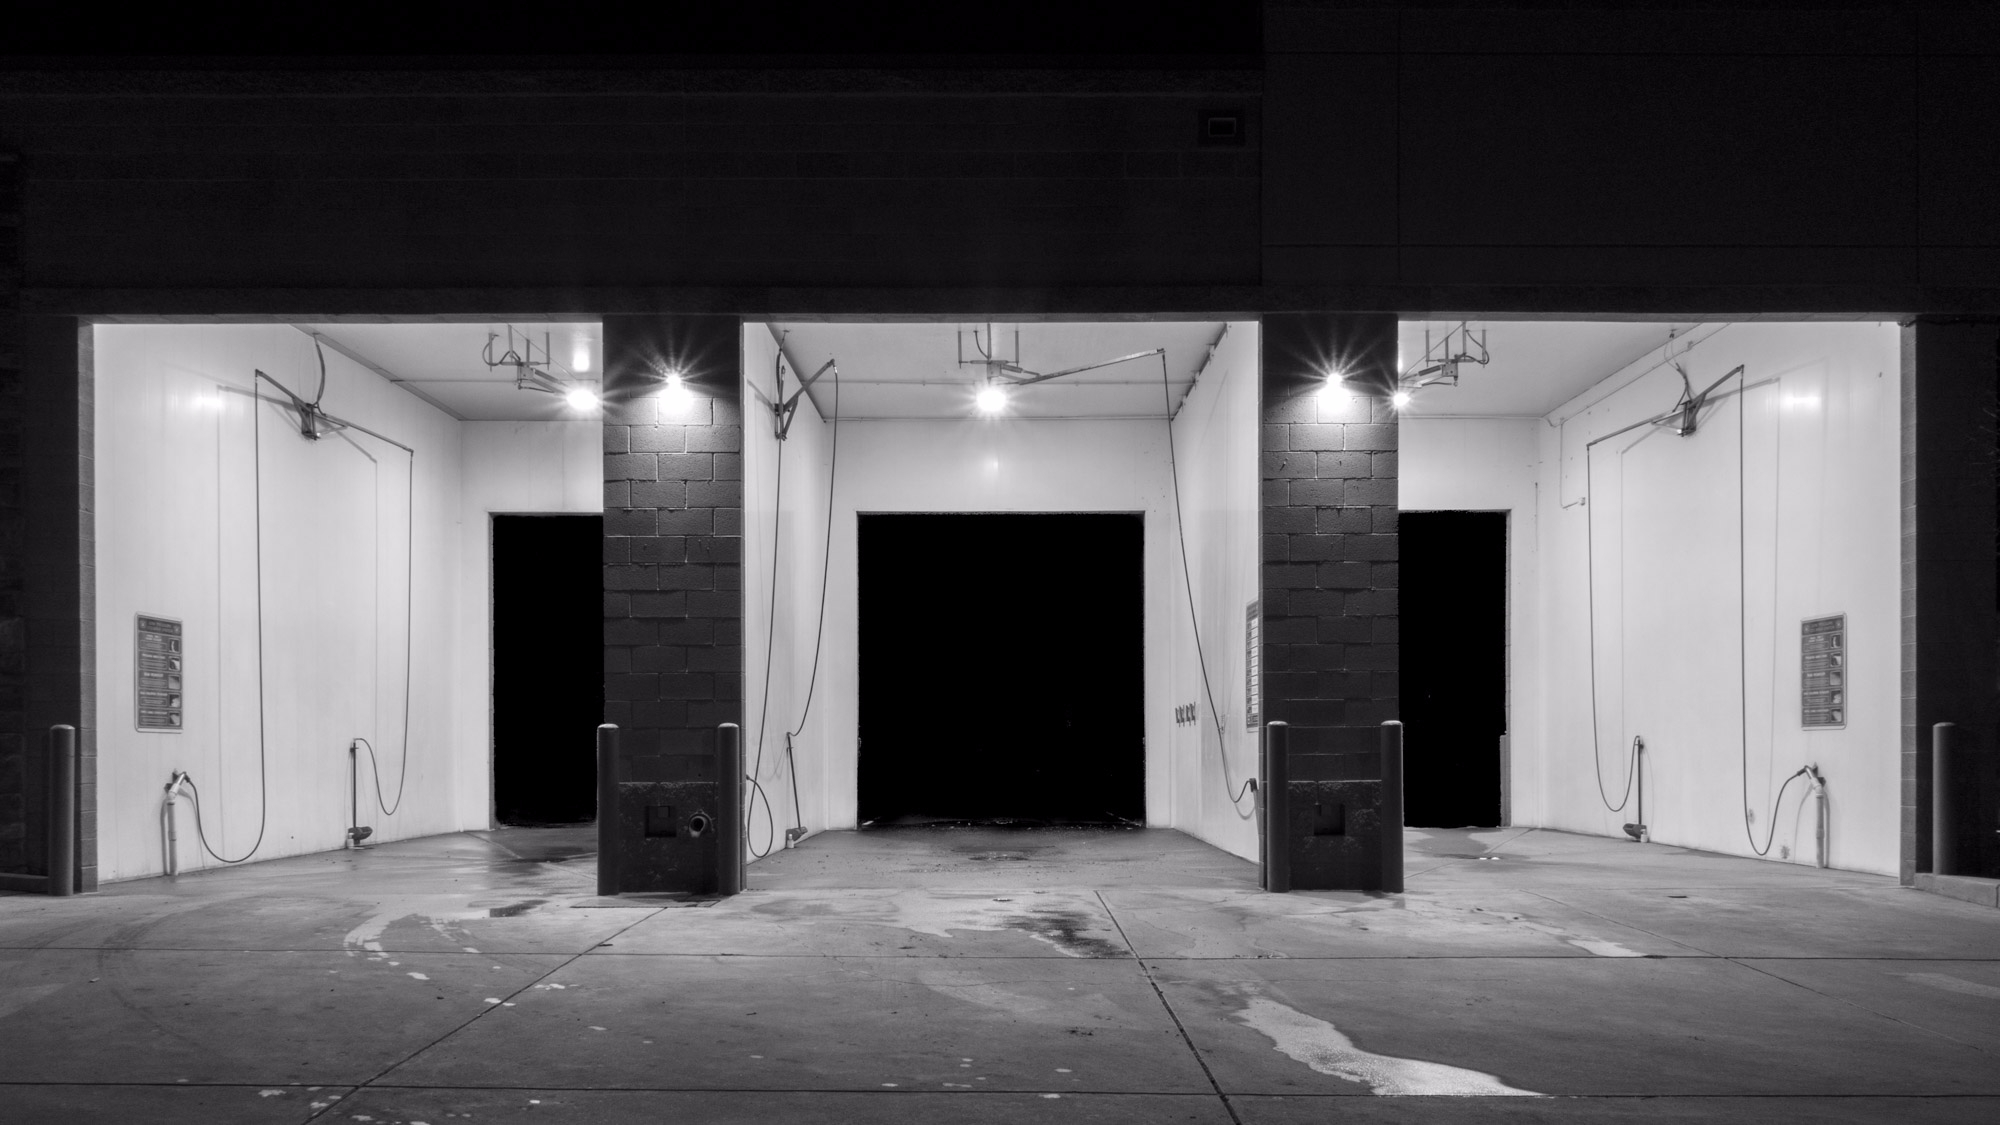 Night Scene - Car Wash - architecture, - chrishuddleston | ello